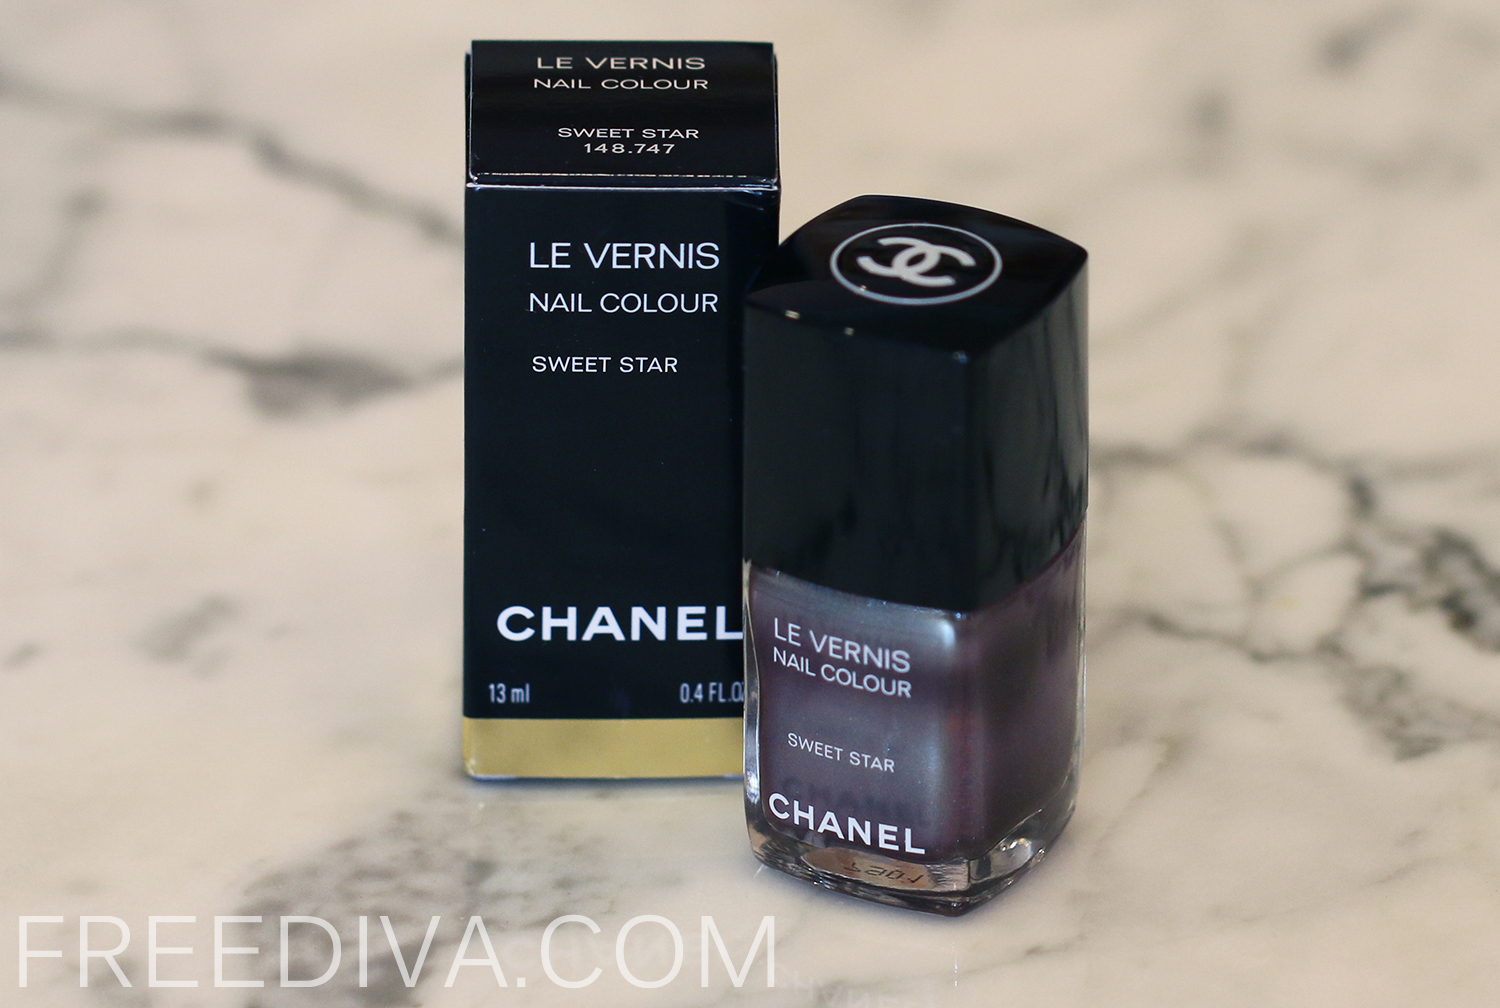 Chanel Sweet Star (Limited Edition) Le Vernis Nail Color